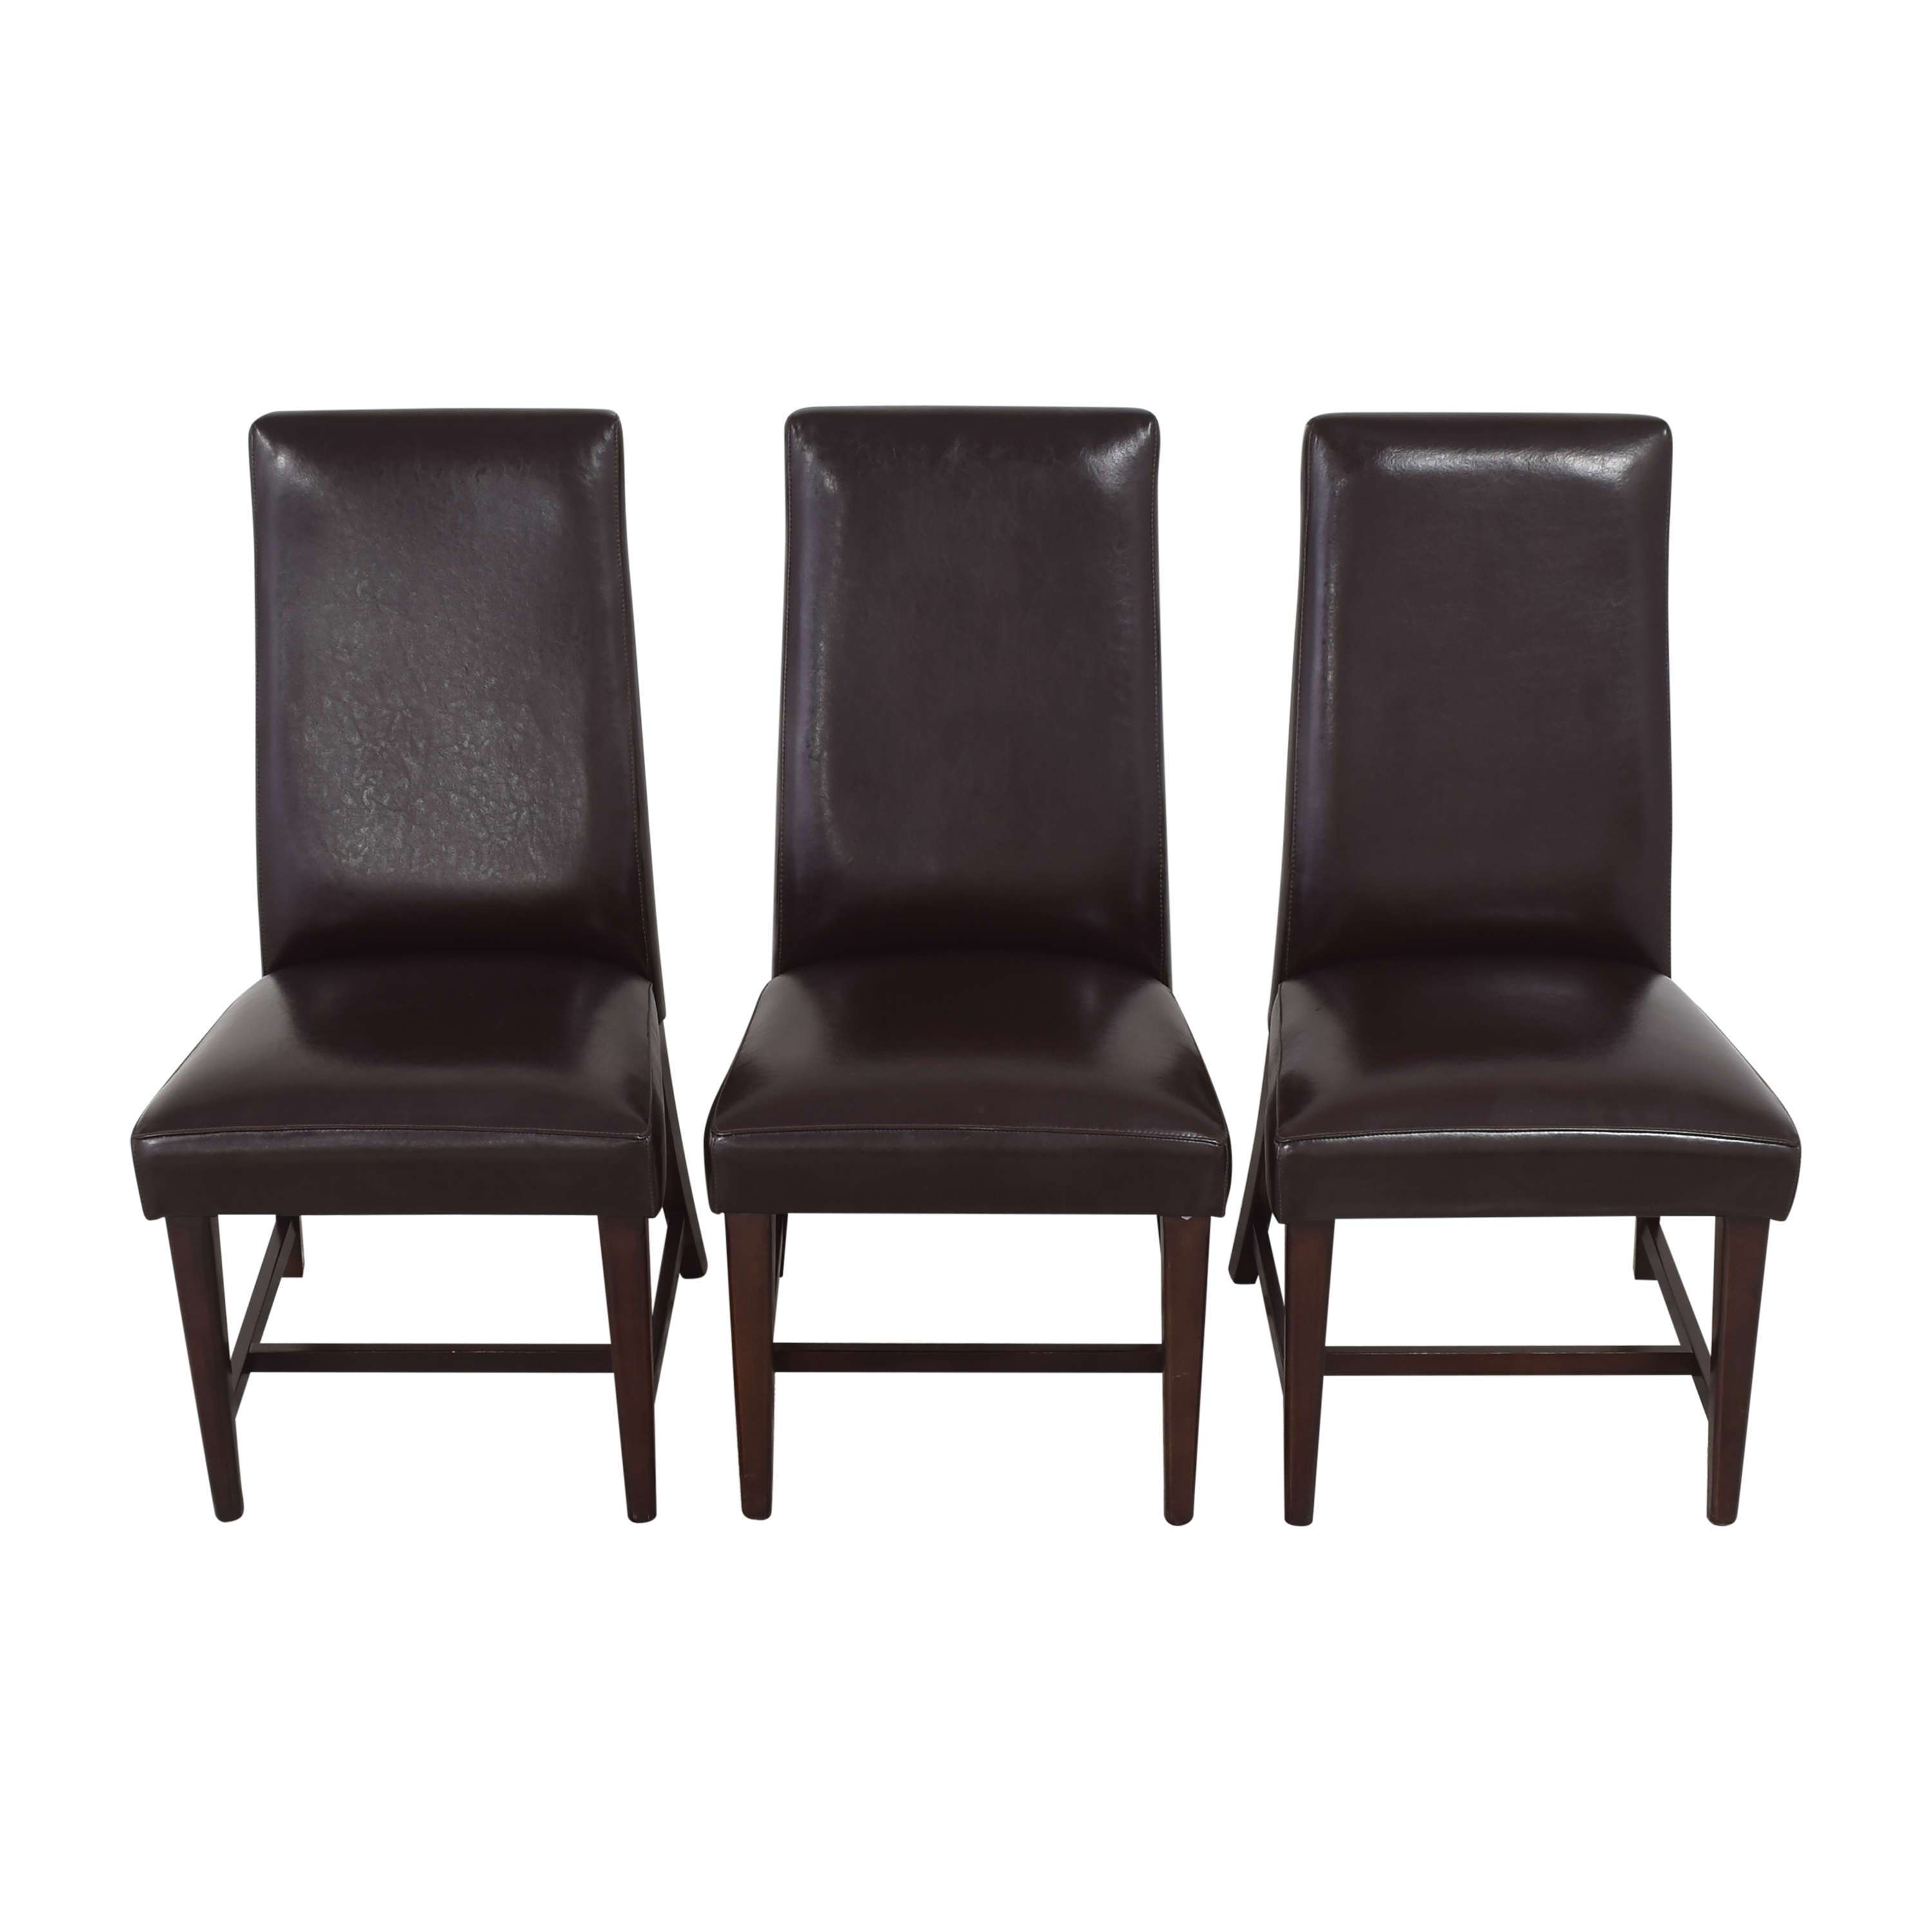 buy Shermag High Back Dining Chairs Shermag Chairs